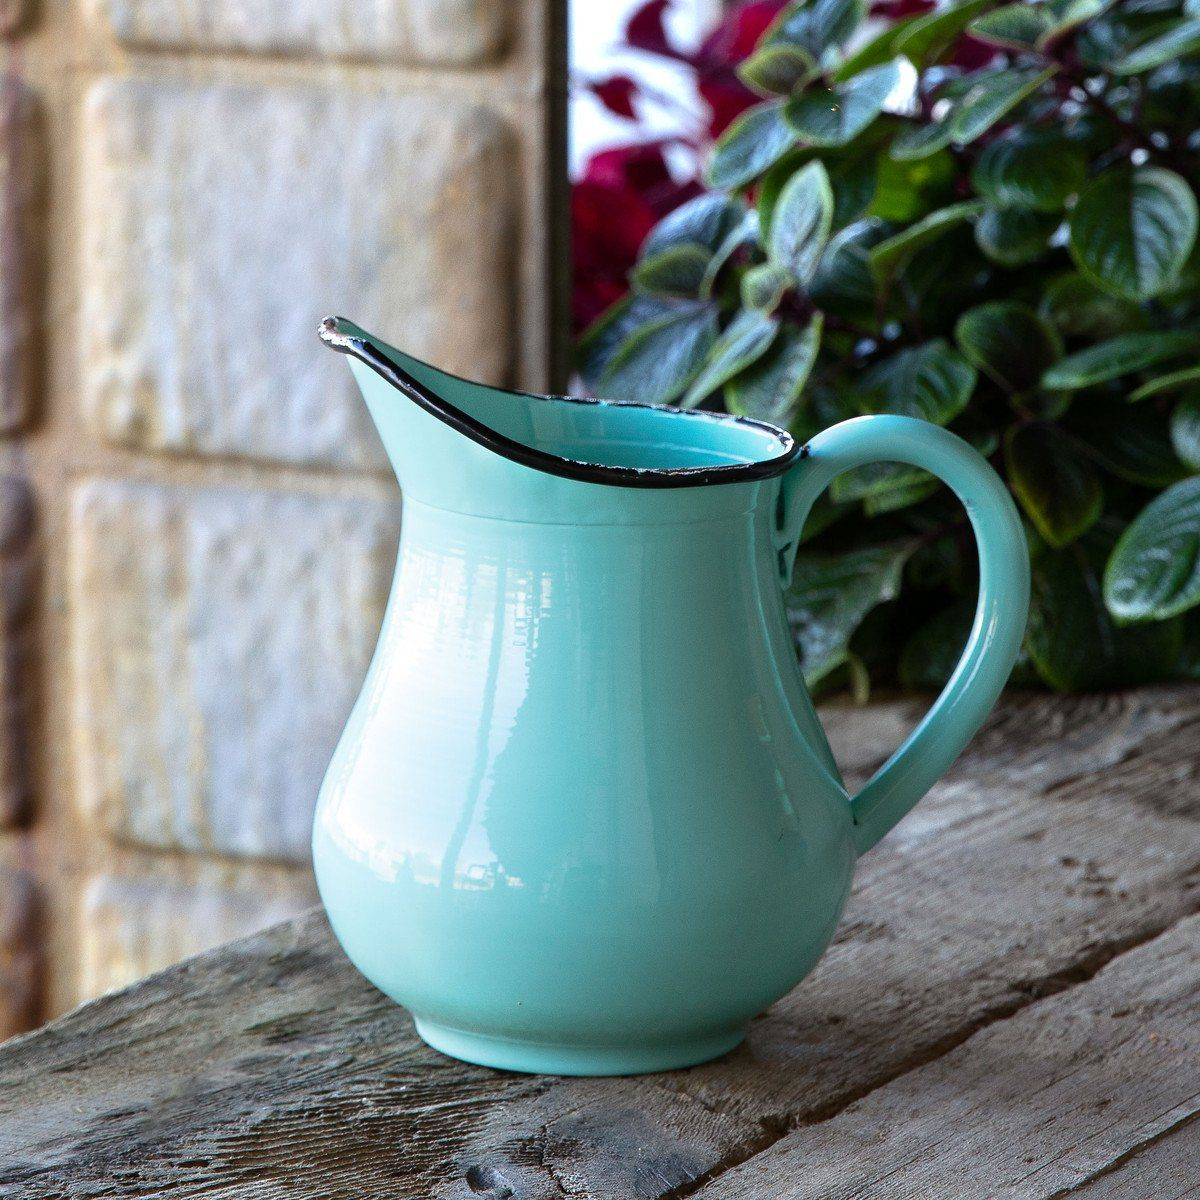 24cm Duck Egg Green Rustic Farmhouse Stoneware Flower Jug Pitcher Kitchen Decor